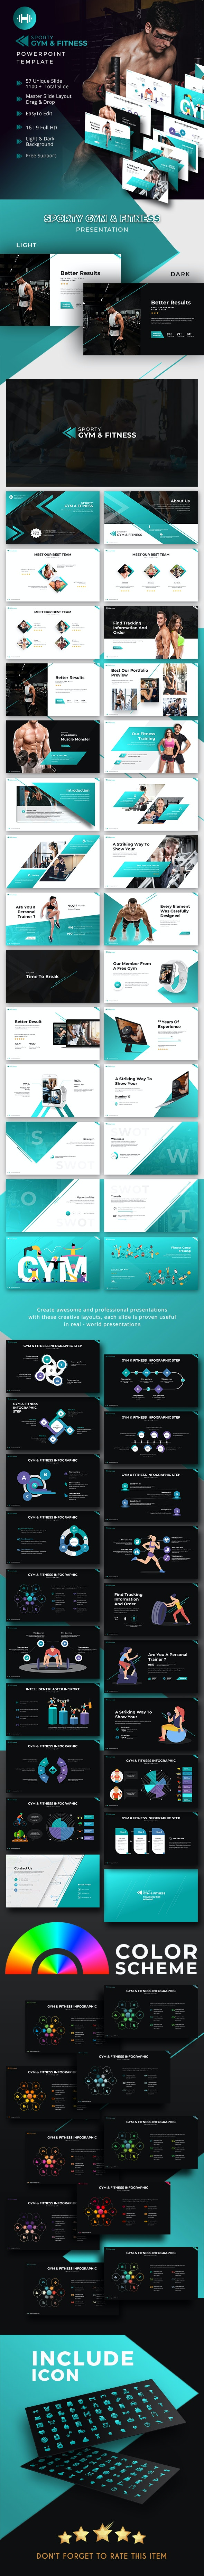 Sporty Gym & Fitness Presentation Template - PowerPoint Templates Presentation Templates